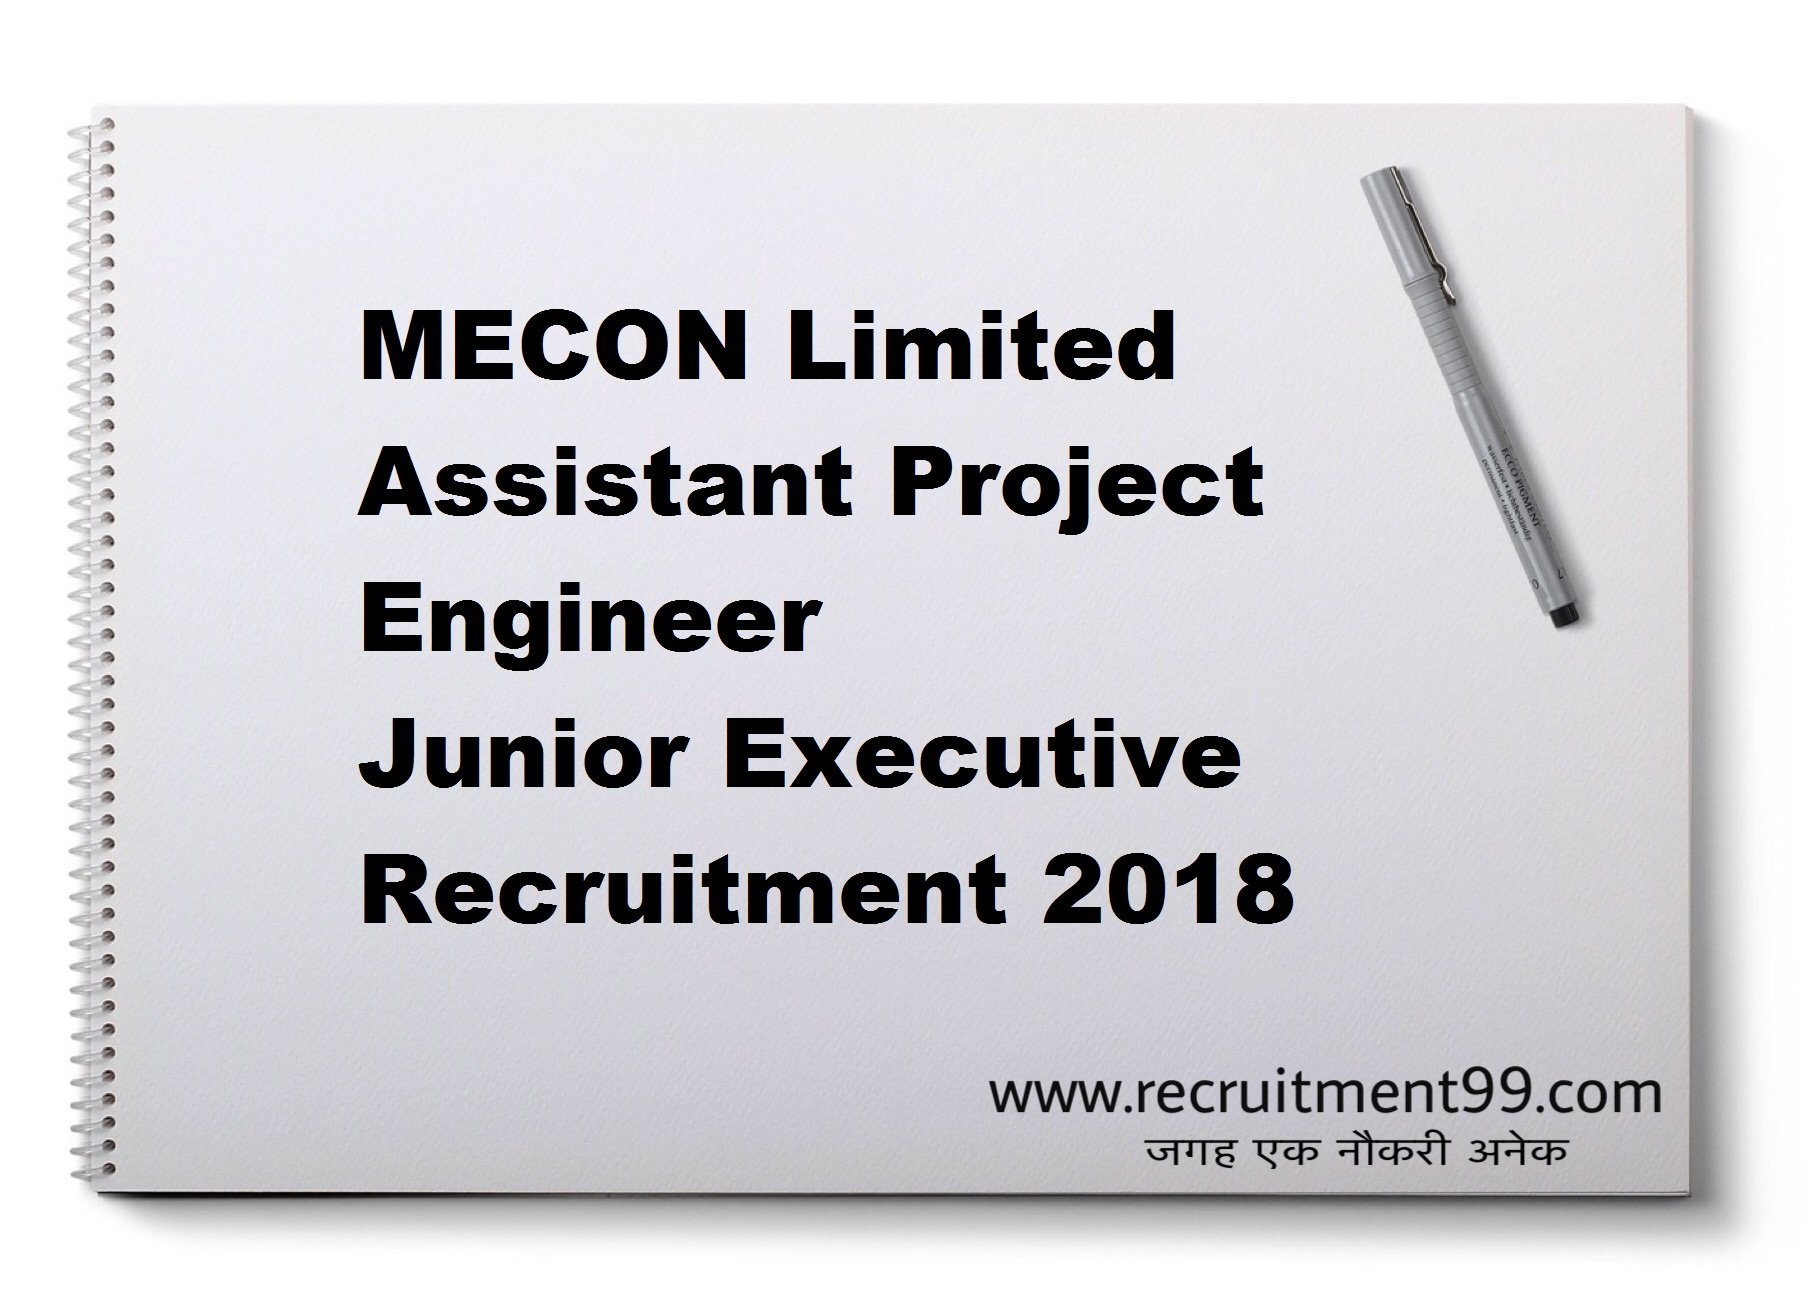 MECON Limited Assistant Project Engineer Junior Executive Recruitment Admit Card Result 2018